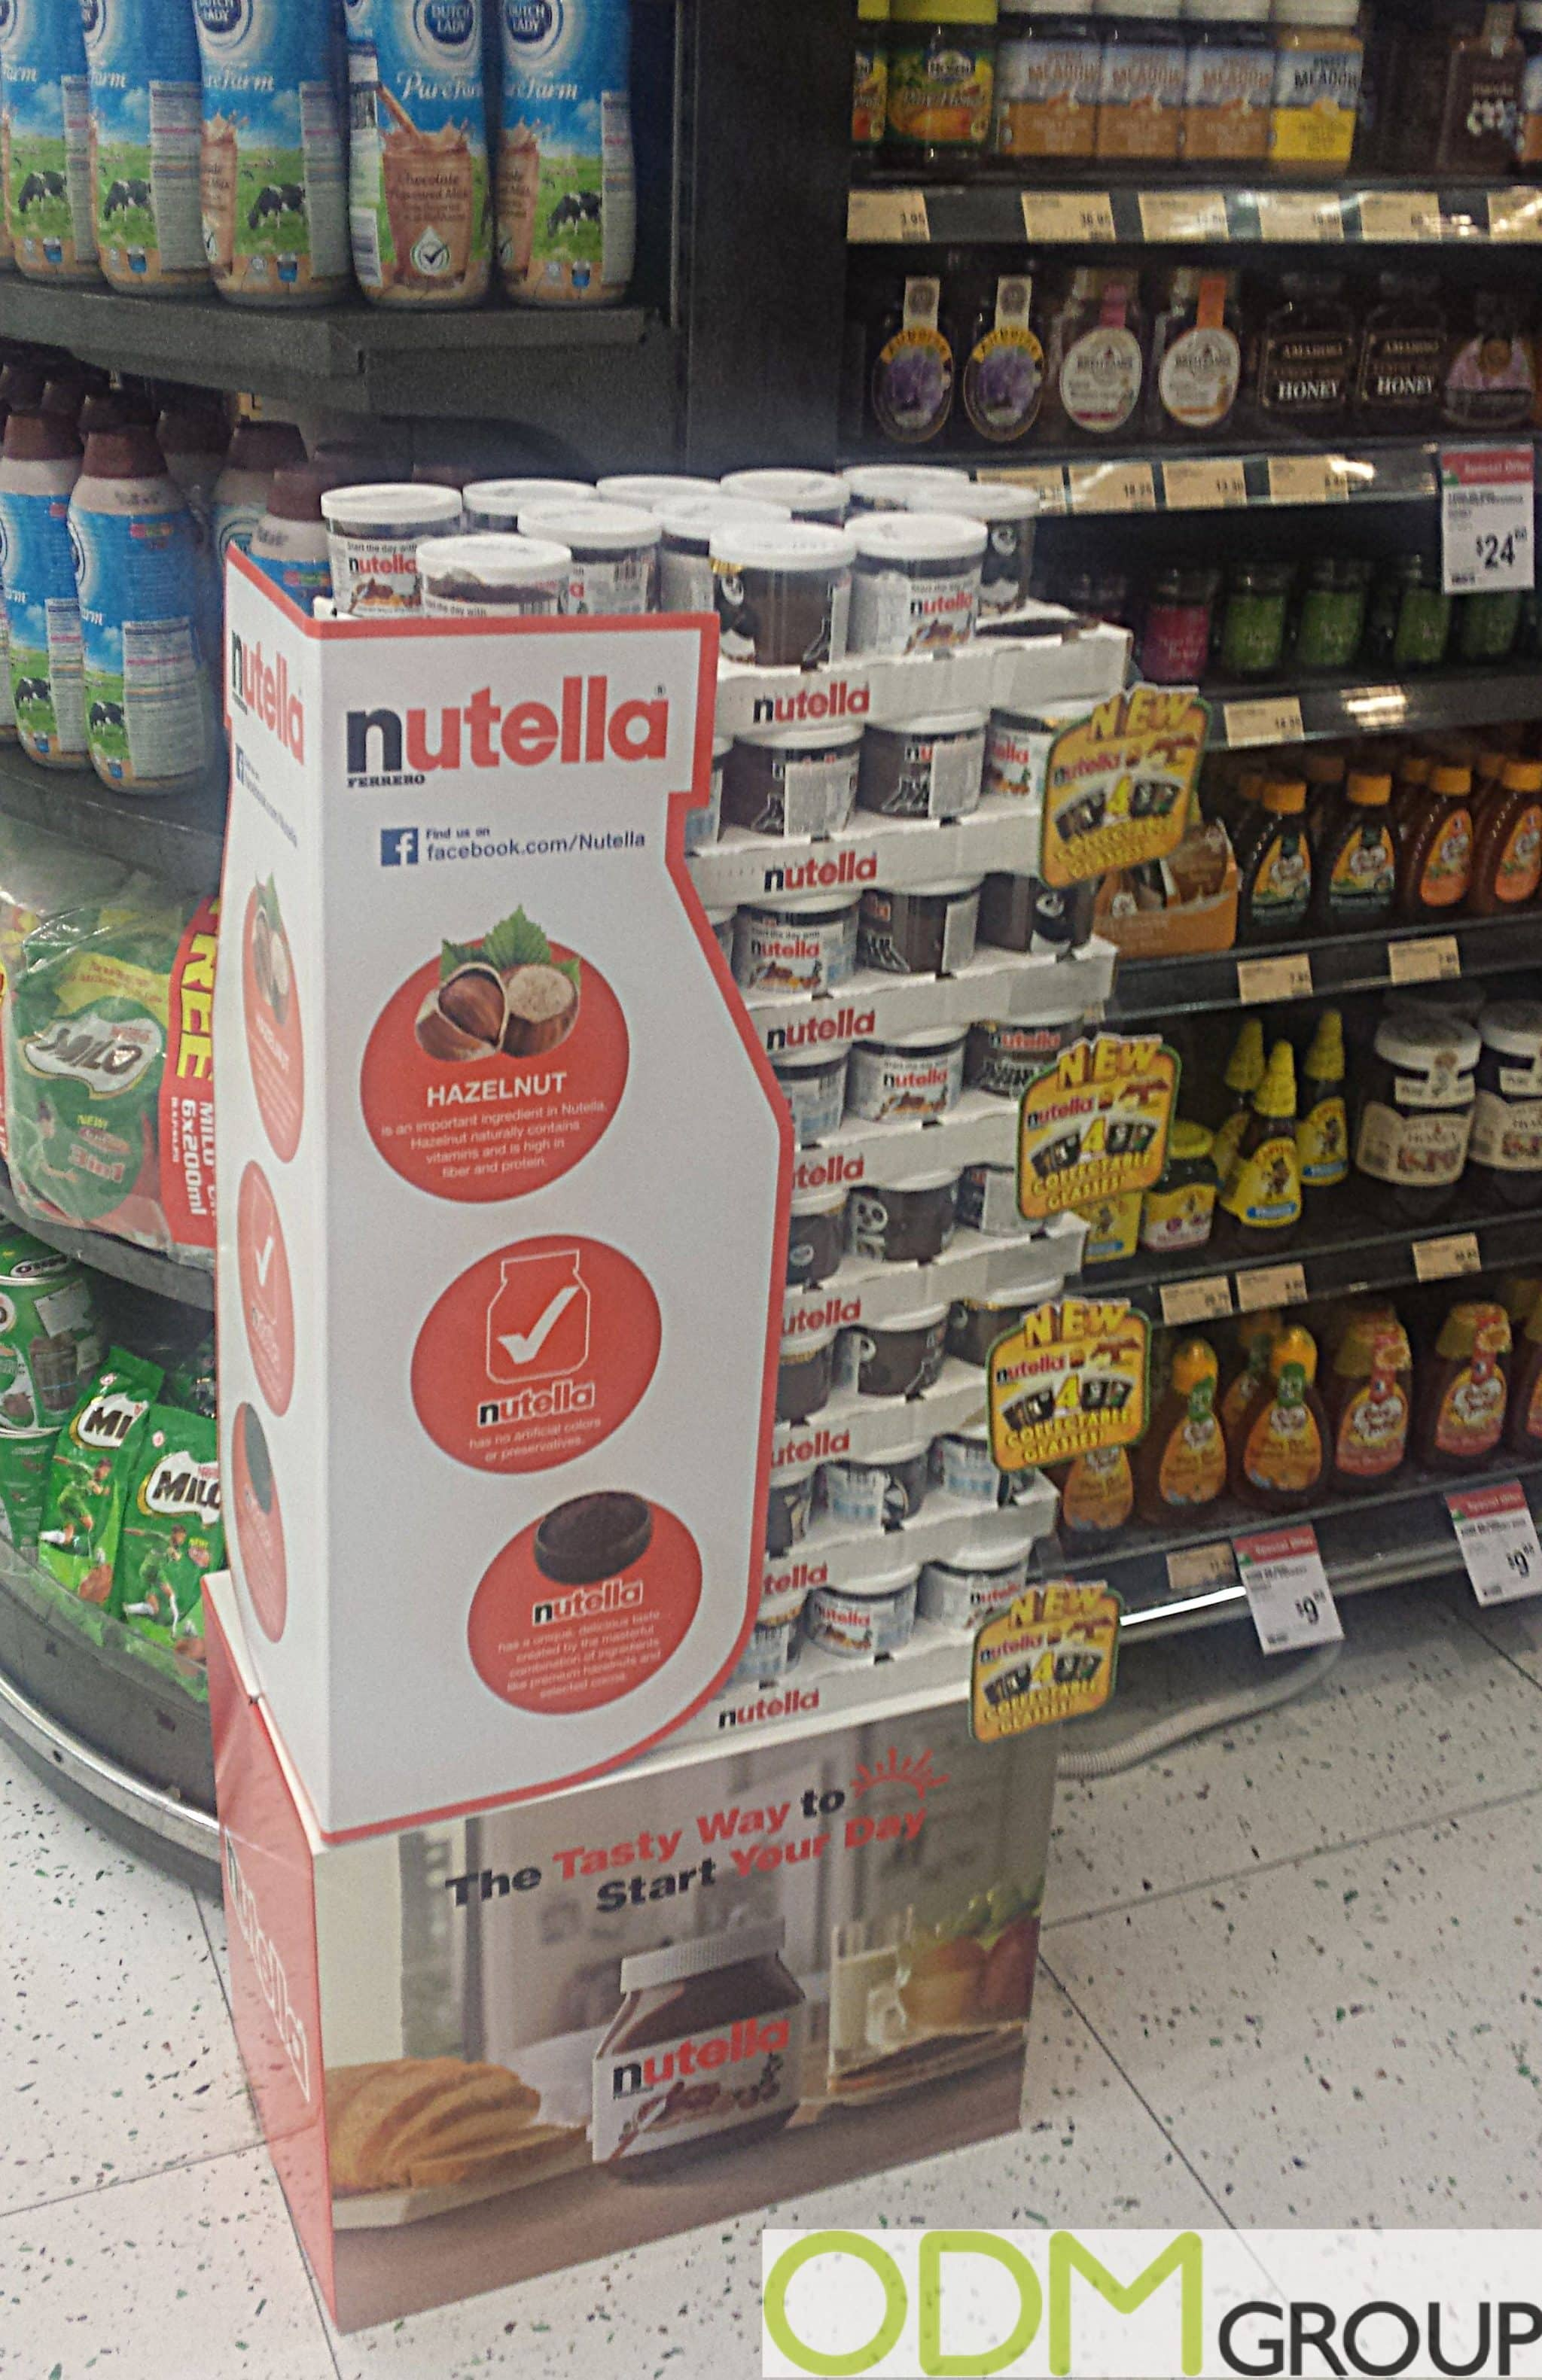 Get Collecting with this Kung Fu Panda Promotion by Nutella.